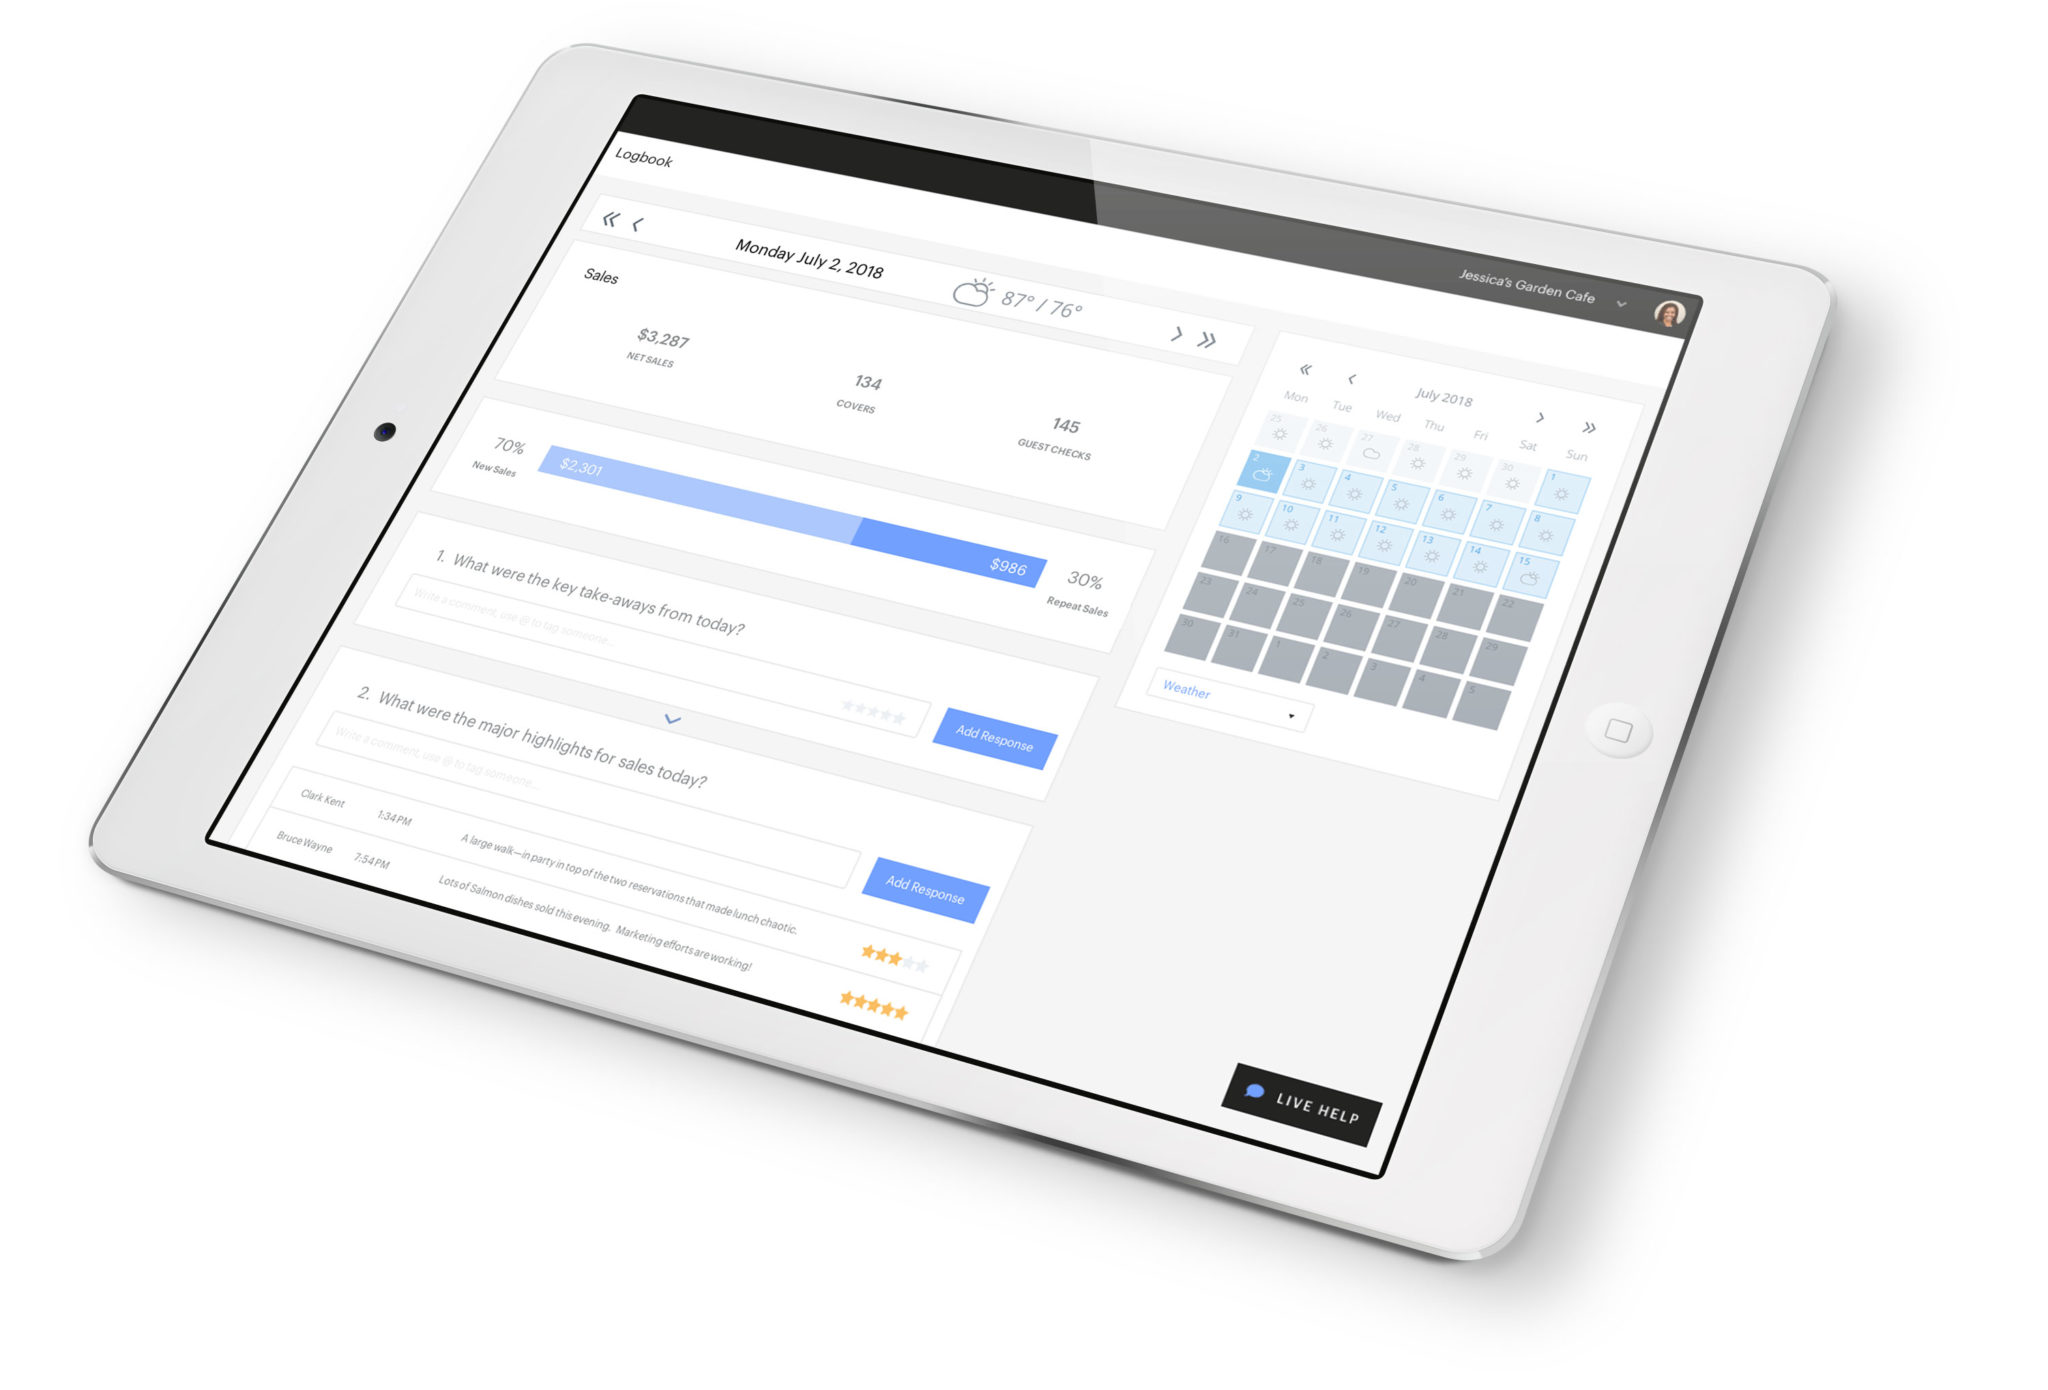 Restaurant Analytics on iPad